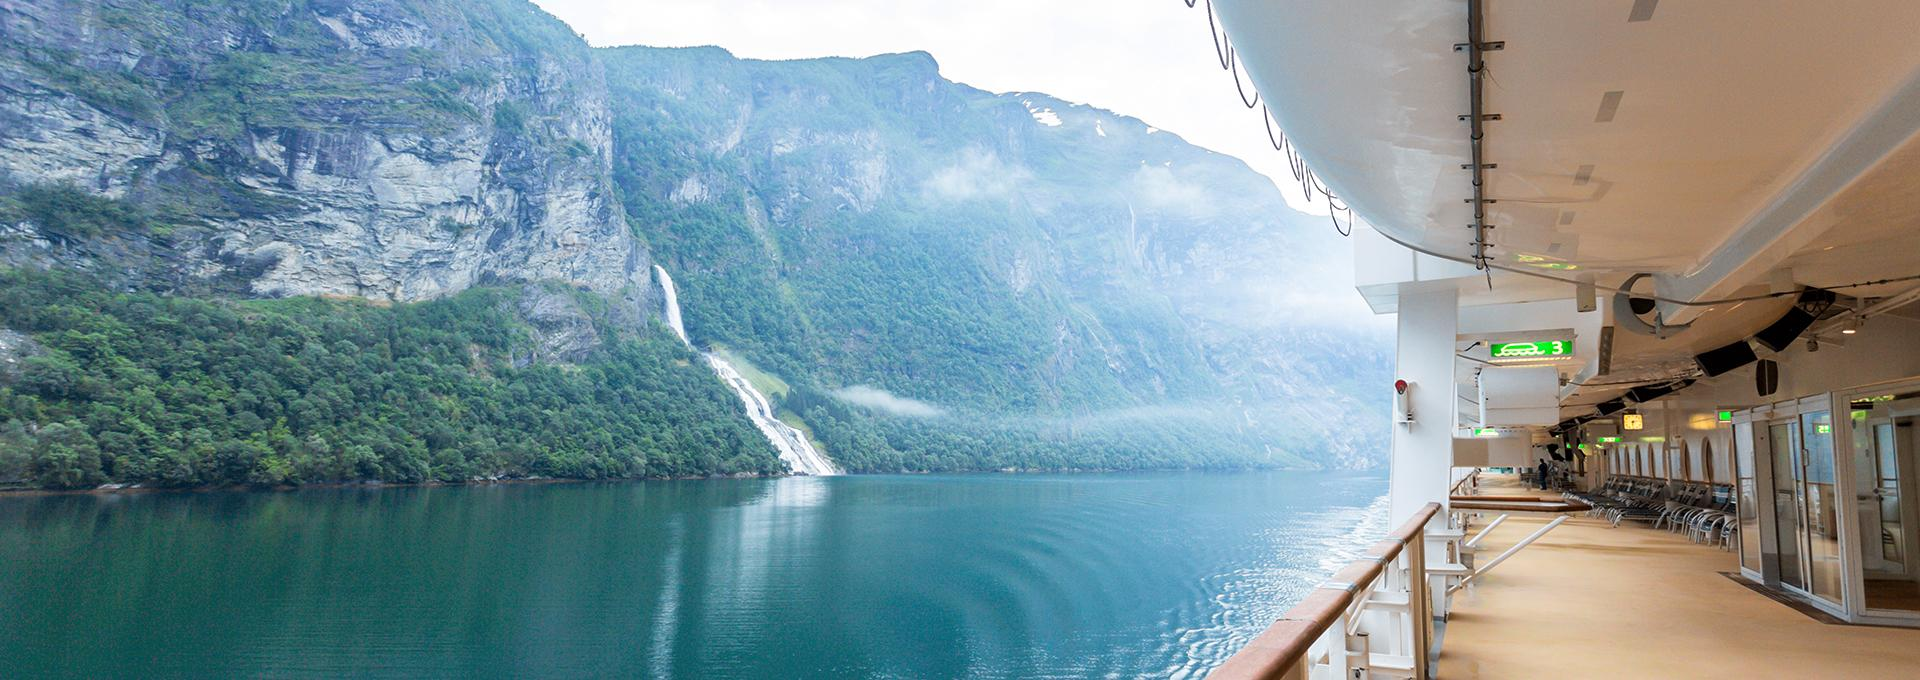 Fjord views aboard a cruise with Liberty Travel vacations